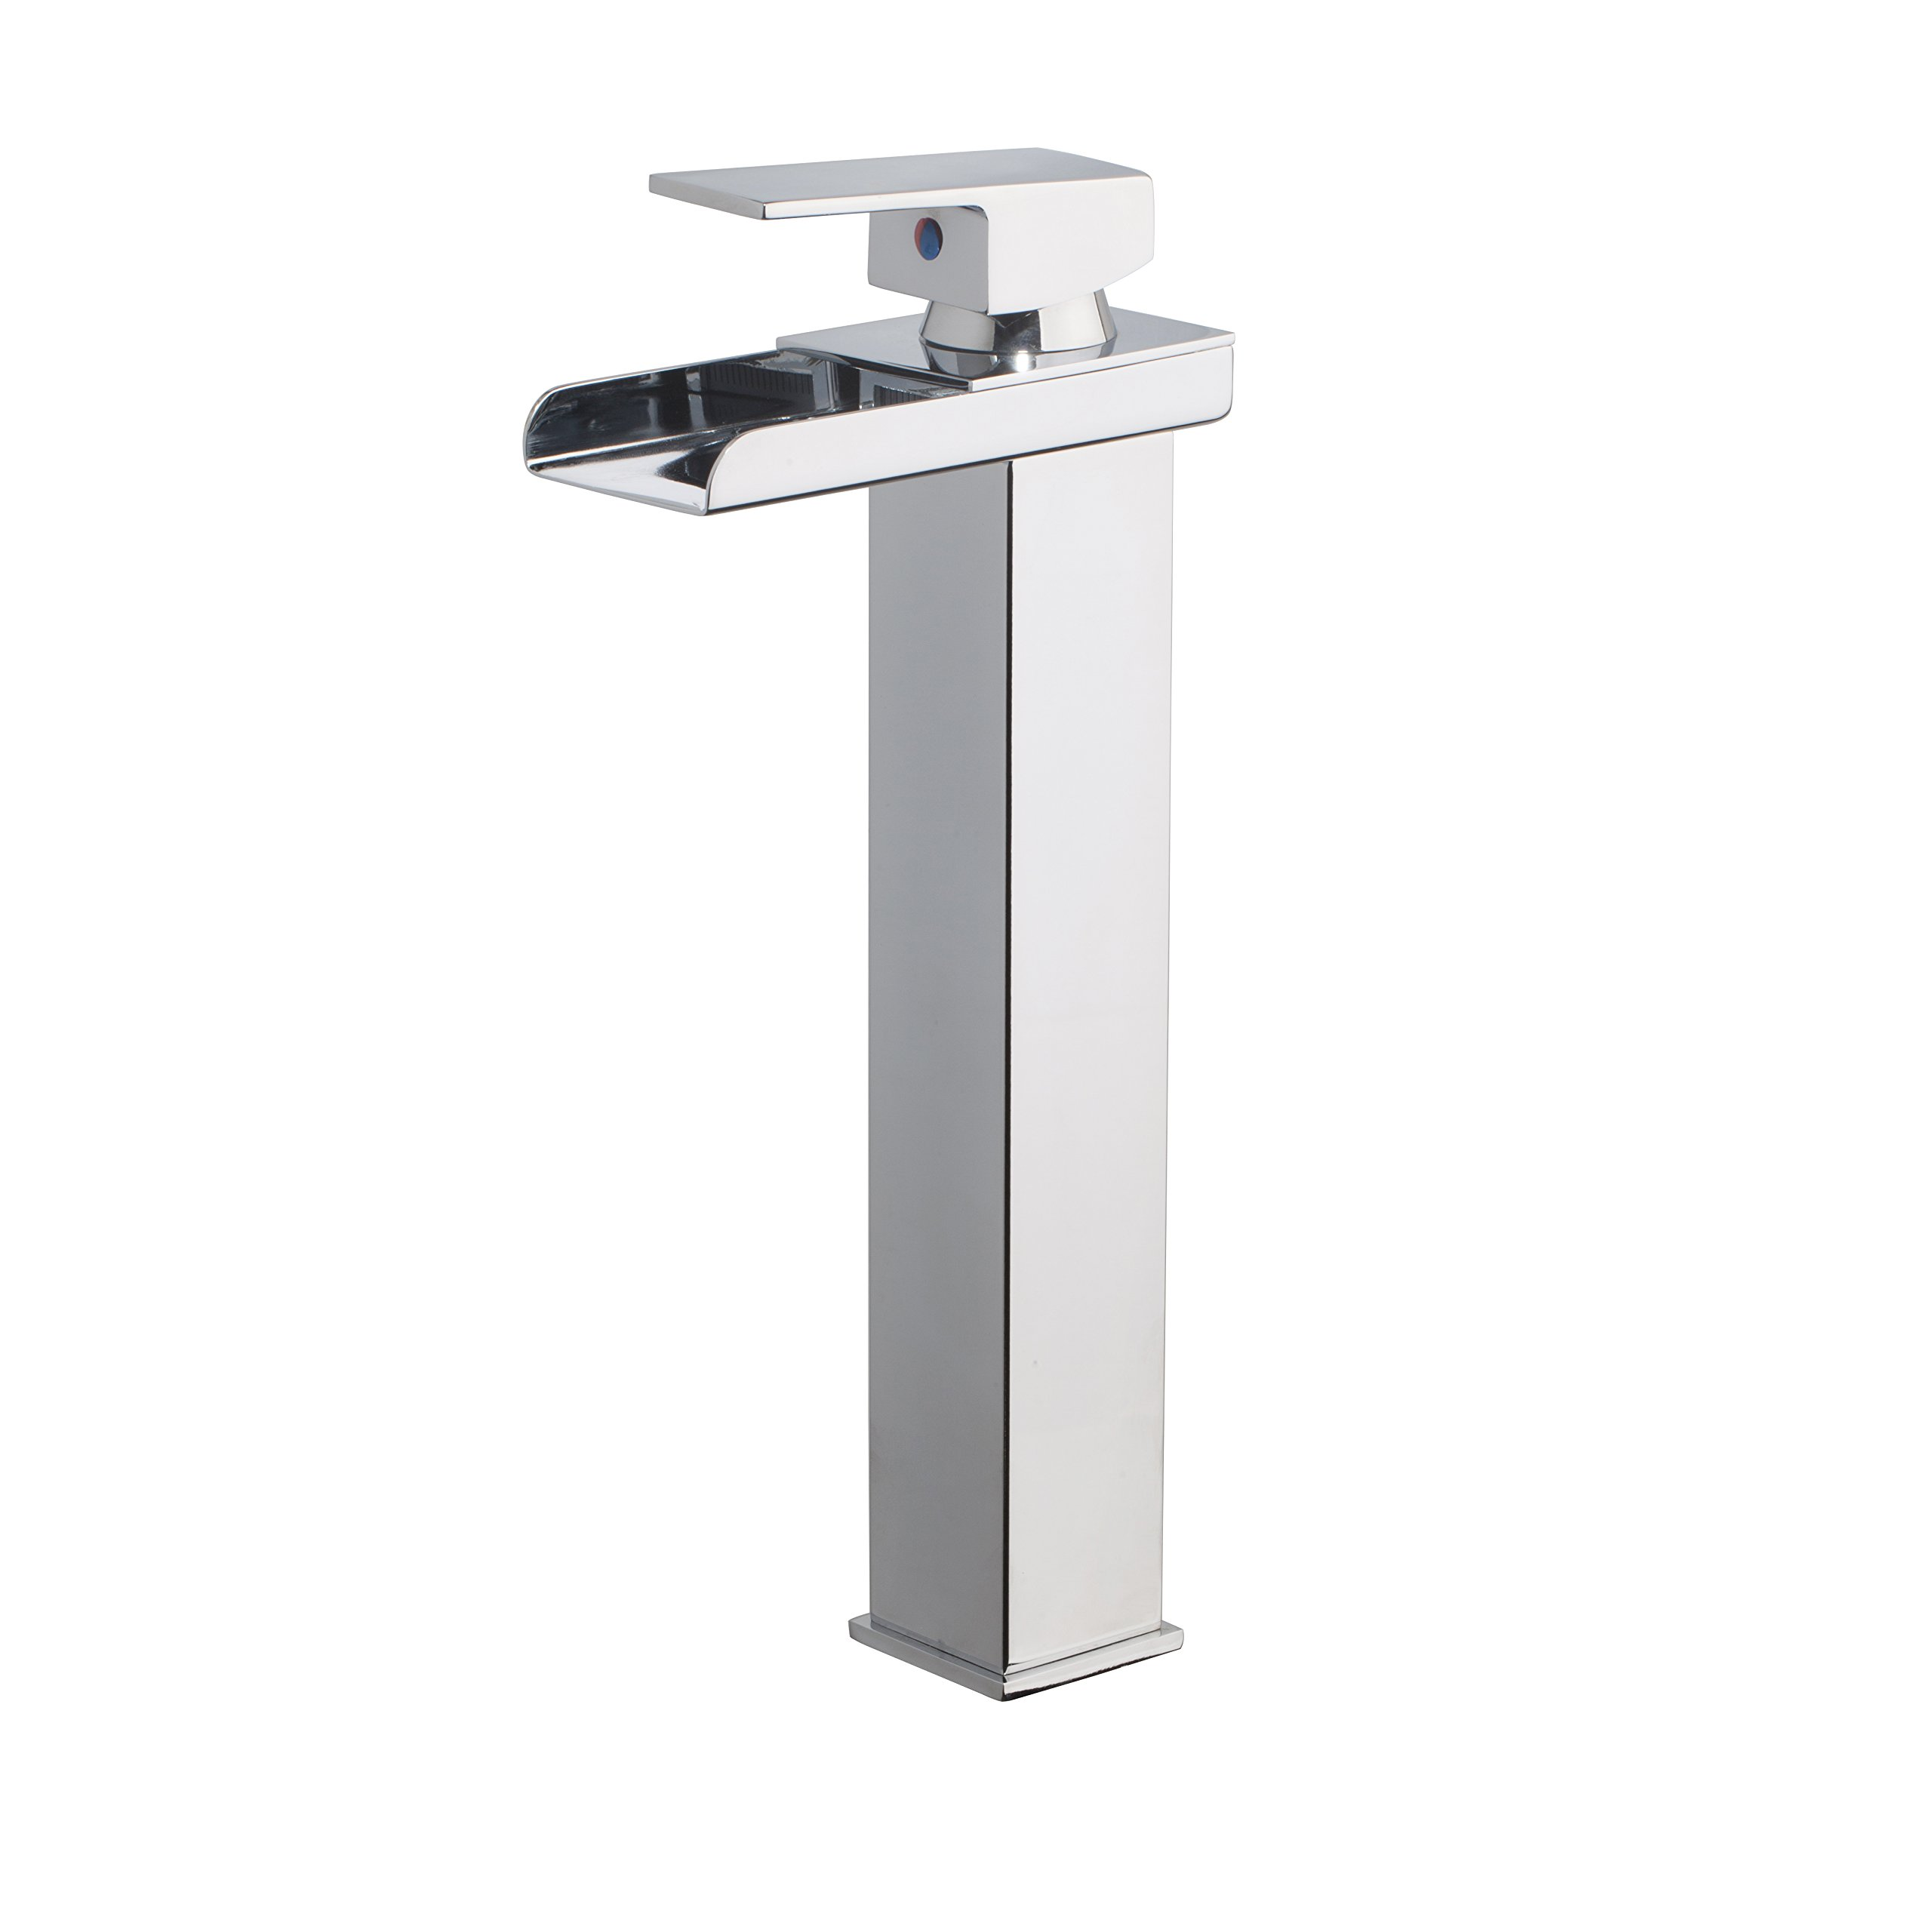 Bathroom Sink Faucets Waterfall Single Handle Basin Sink Mixer Taps Chrome Finish Yutfaucet by Yutfaucet (Image #1)